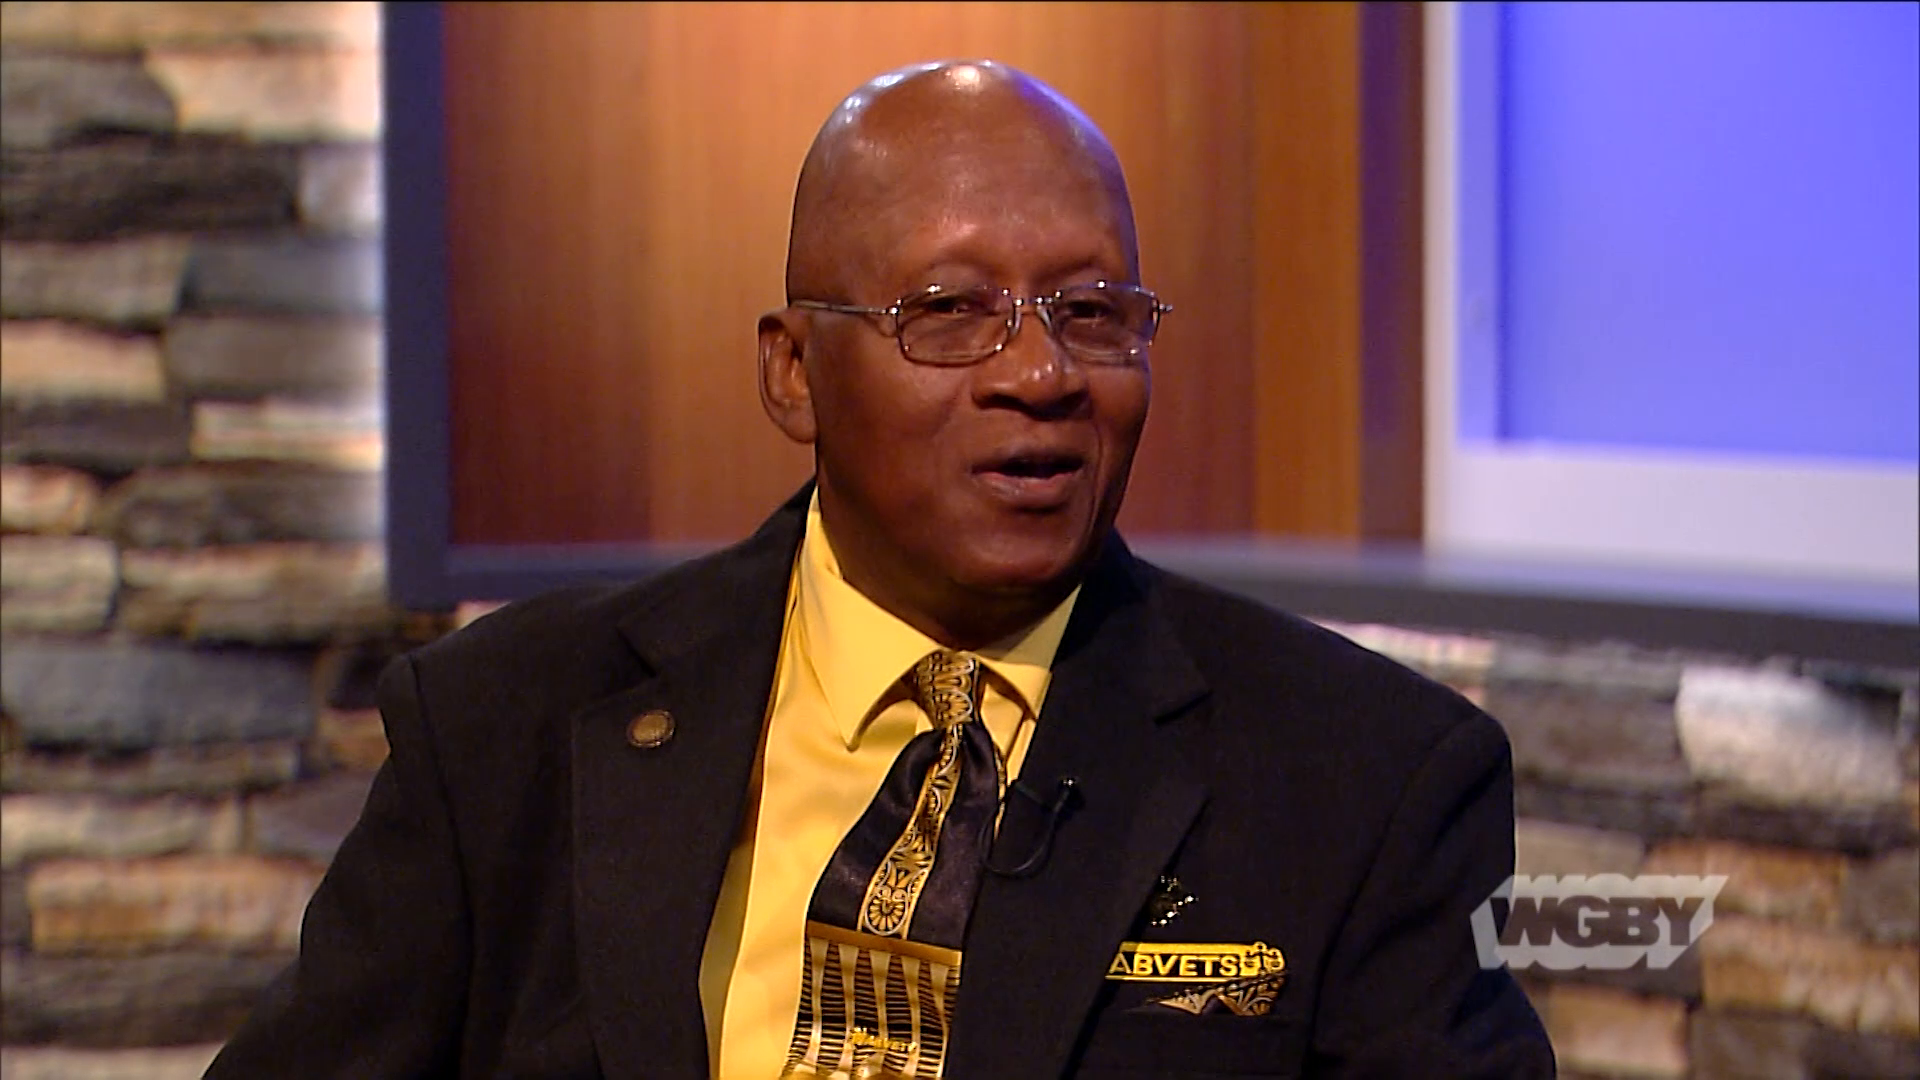 Vietnam veteran Tony Bass, Commander of the western mass National Association of Black Veterans chapter, shares how NABVets supports vets & their families.